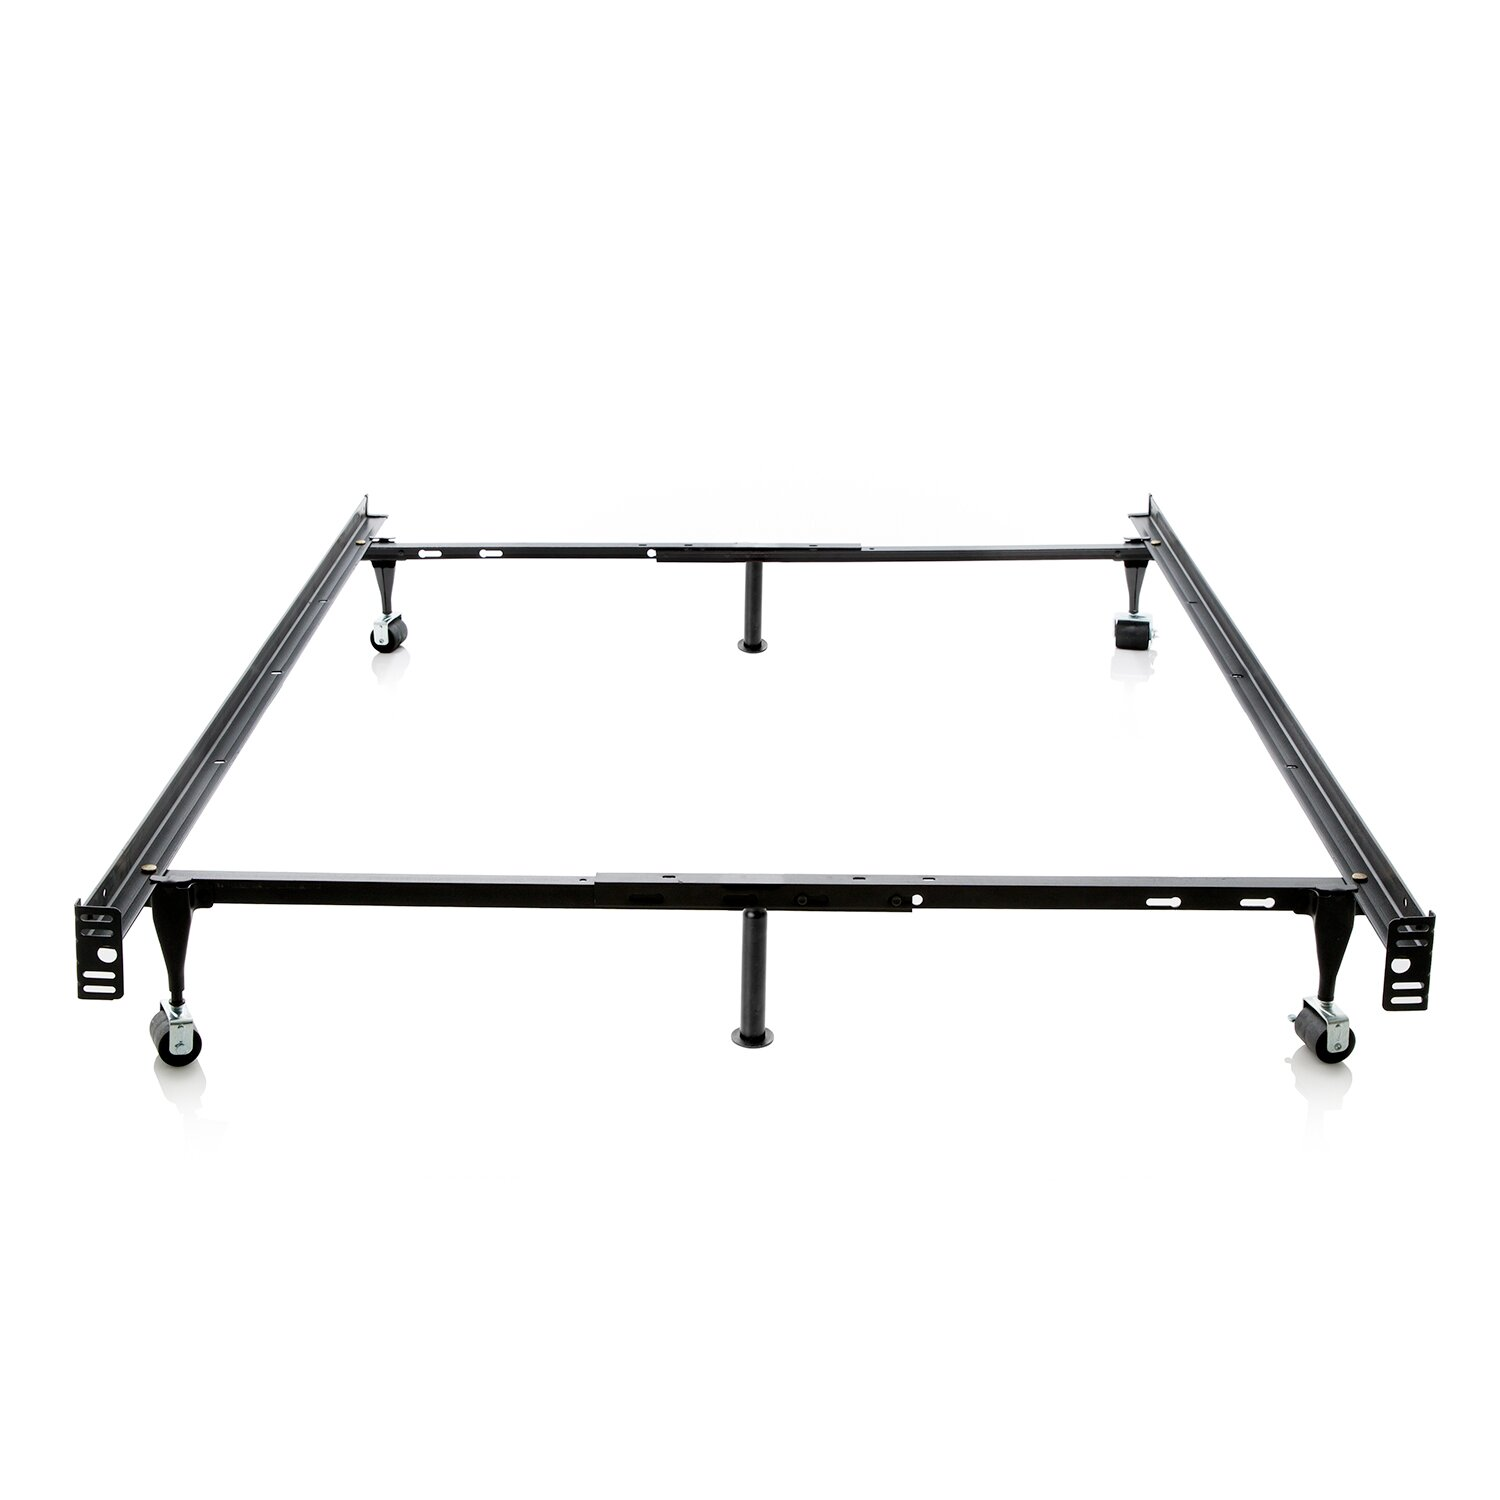 malouf heavy duty 6 leg adjustable metal bed frame with rug roller